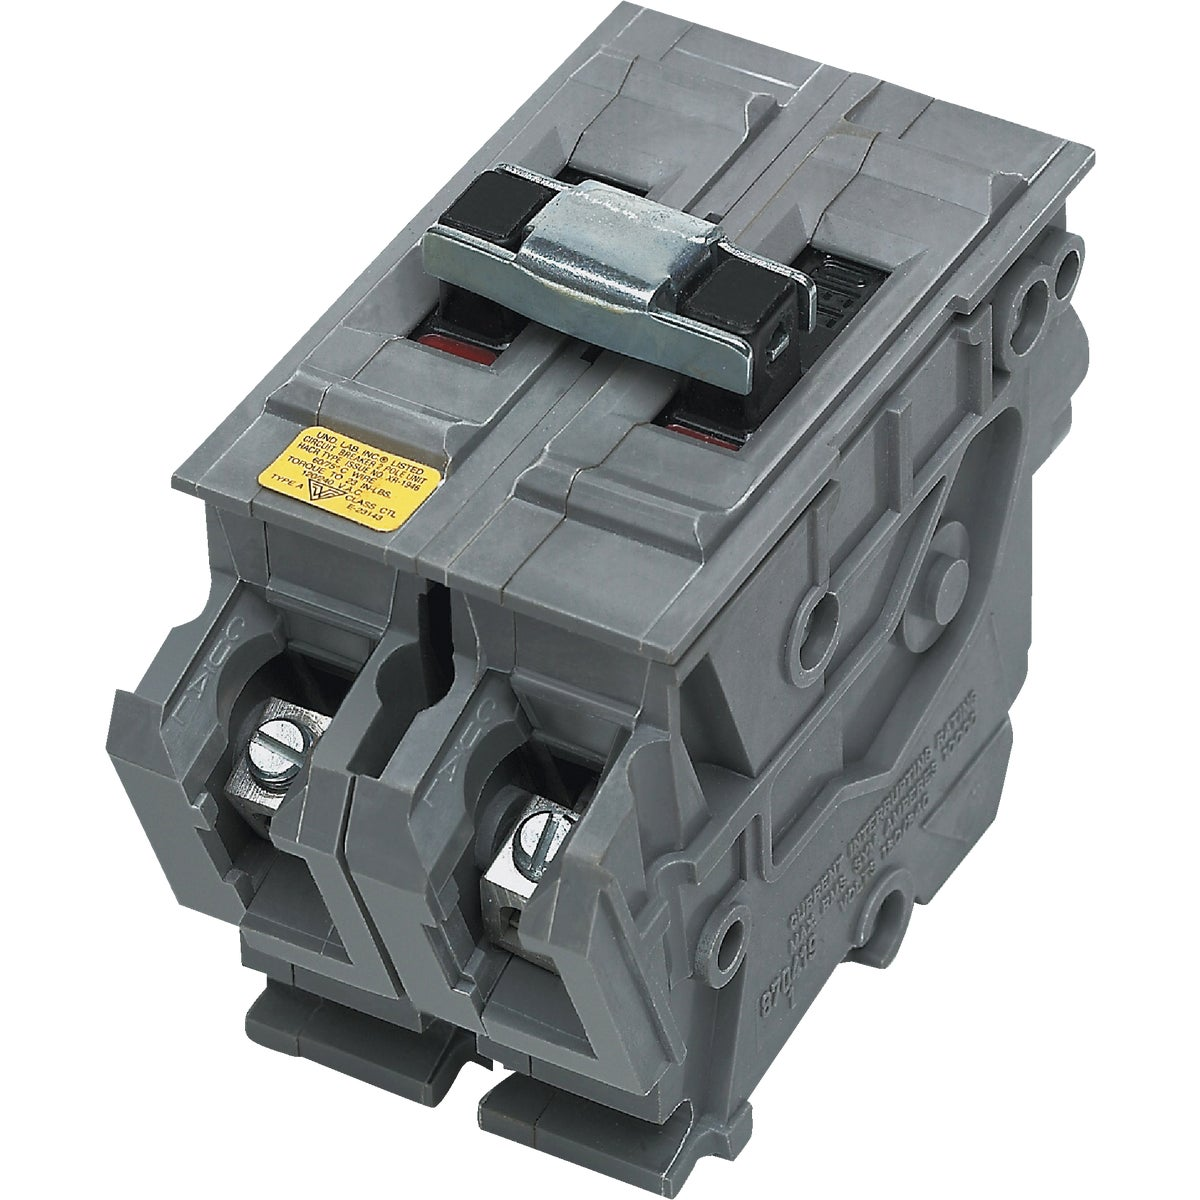 20A 2P CIRCUIT BREAKER - WA220 by Connecticut Electric